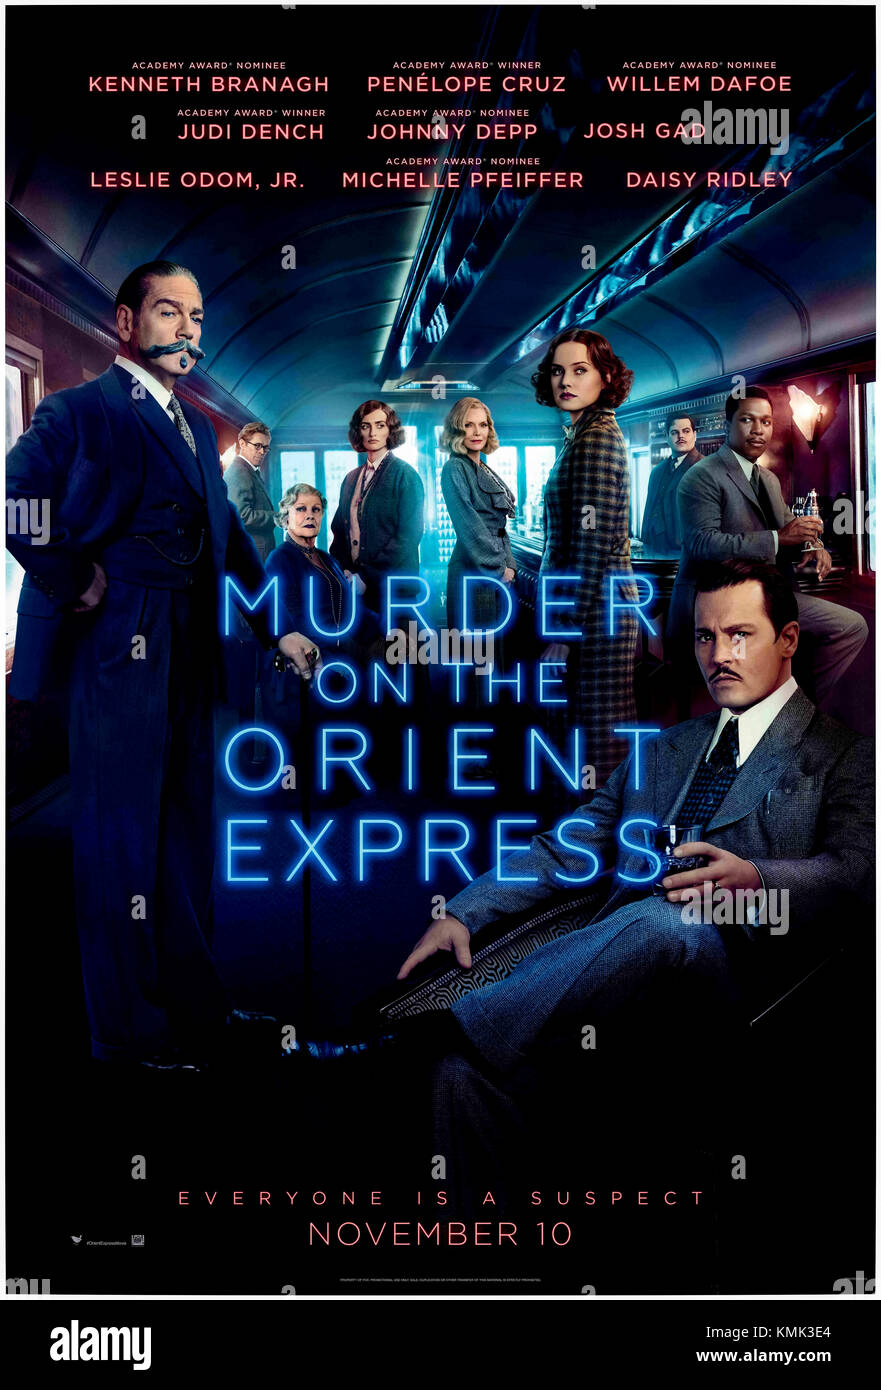 Murder on the Orient Express (2017) directed by Kenneth Branagh and starring Kenneth Branagh, Penélope Cruz, - Stock Image